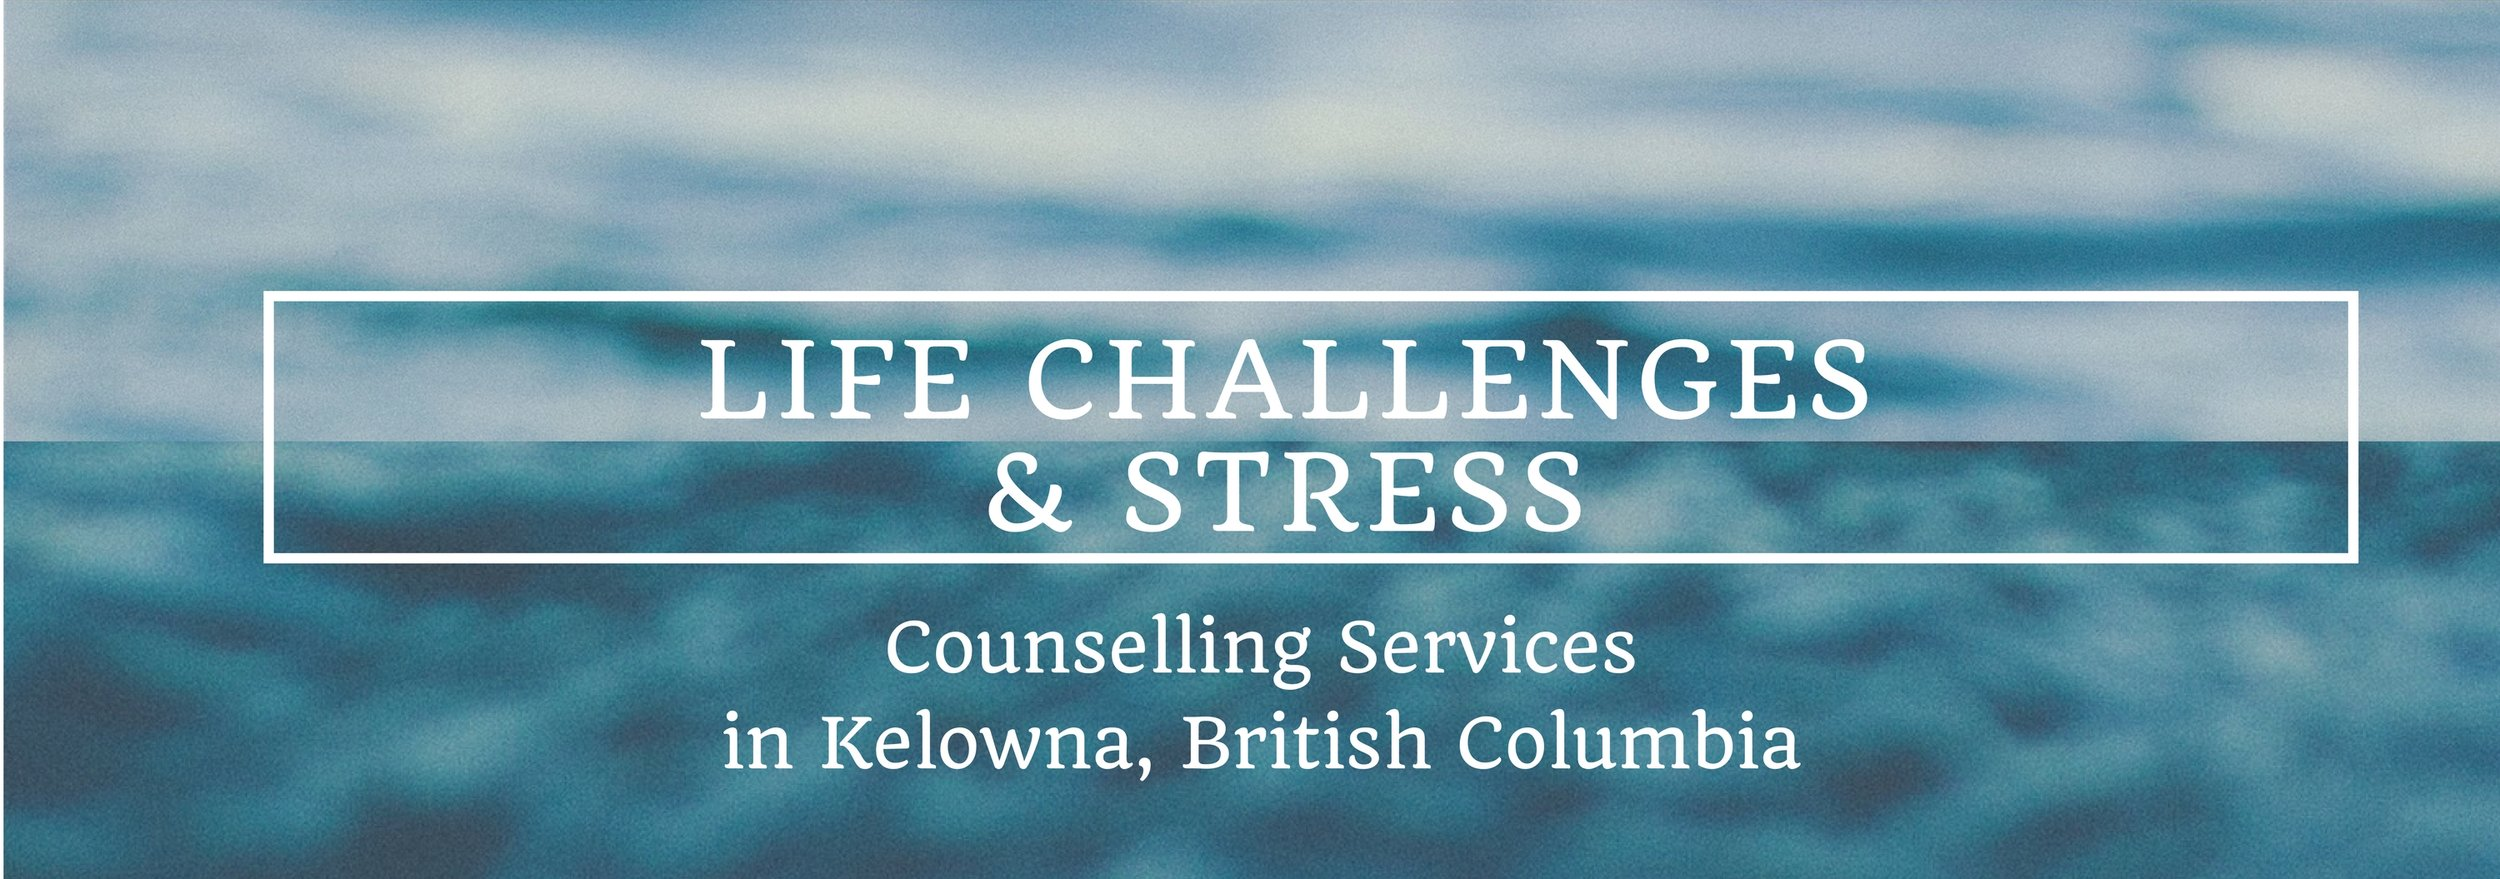 Kelowna Counselling Services Stress